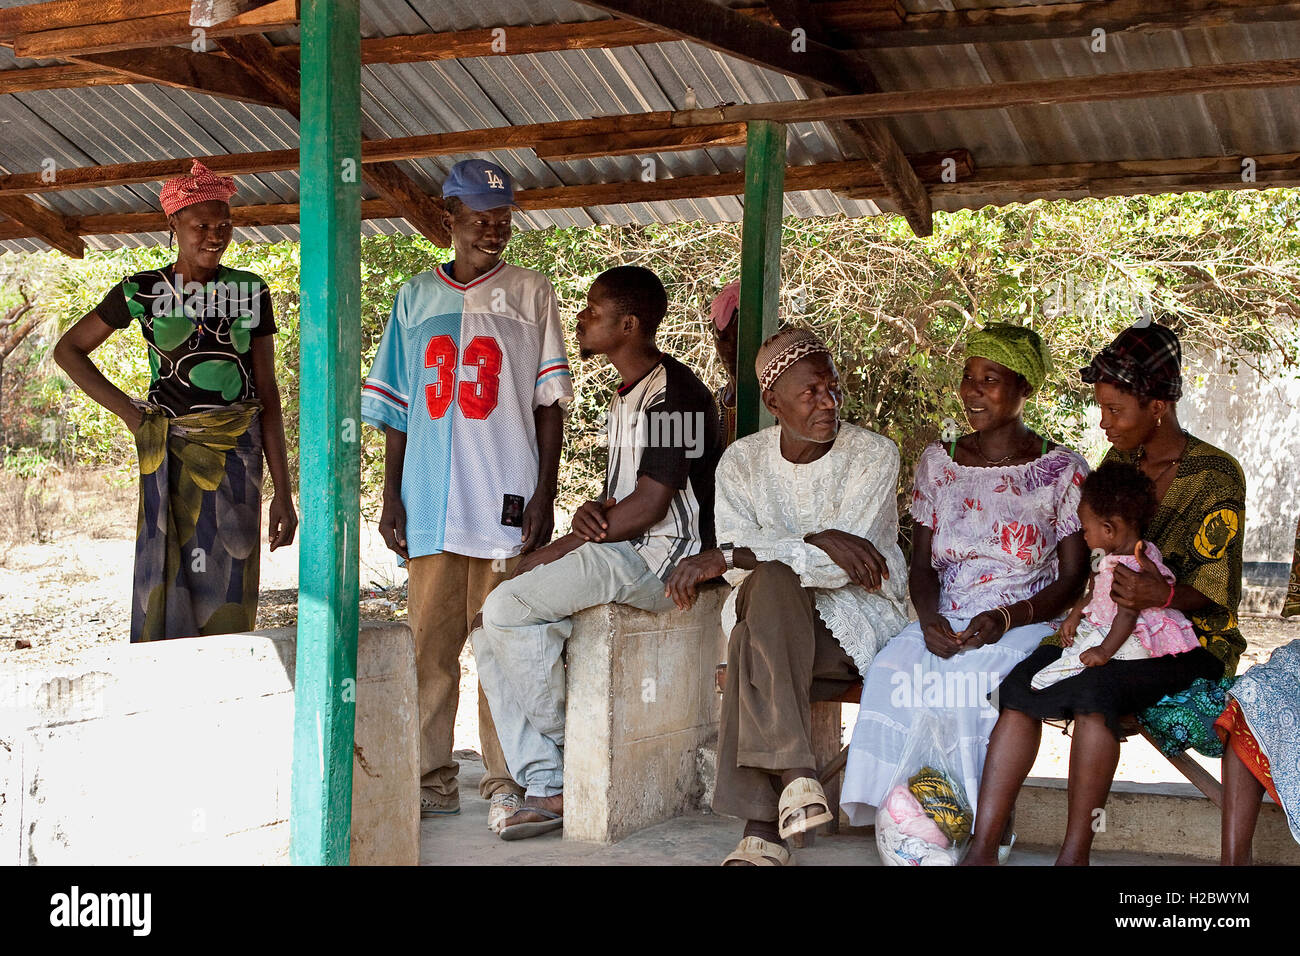 Patients, family and friends waiting outside health clinic, a community project supported by iron ore company in - Stock Image